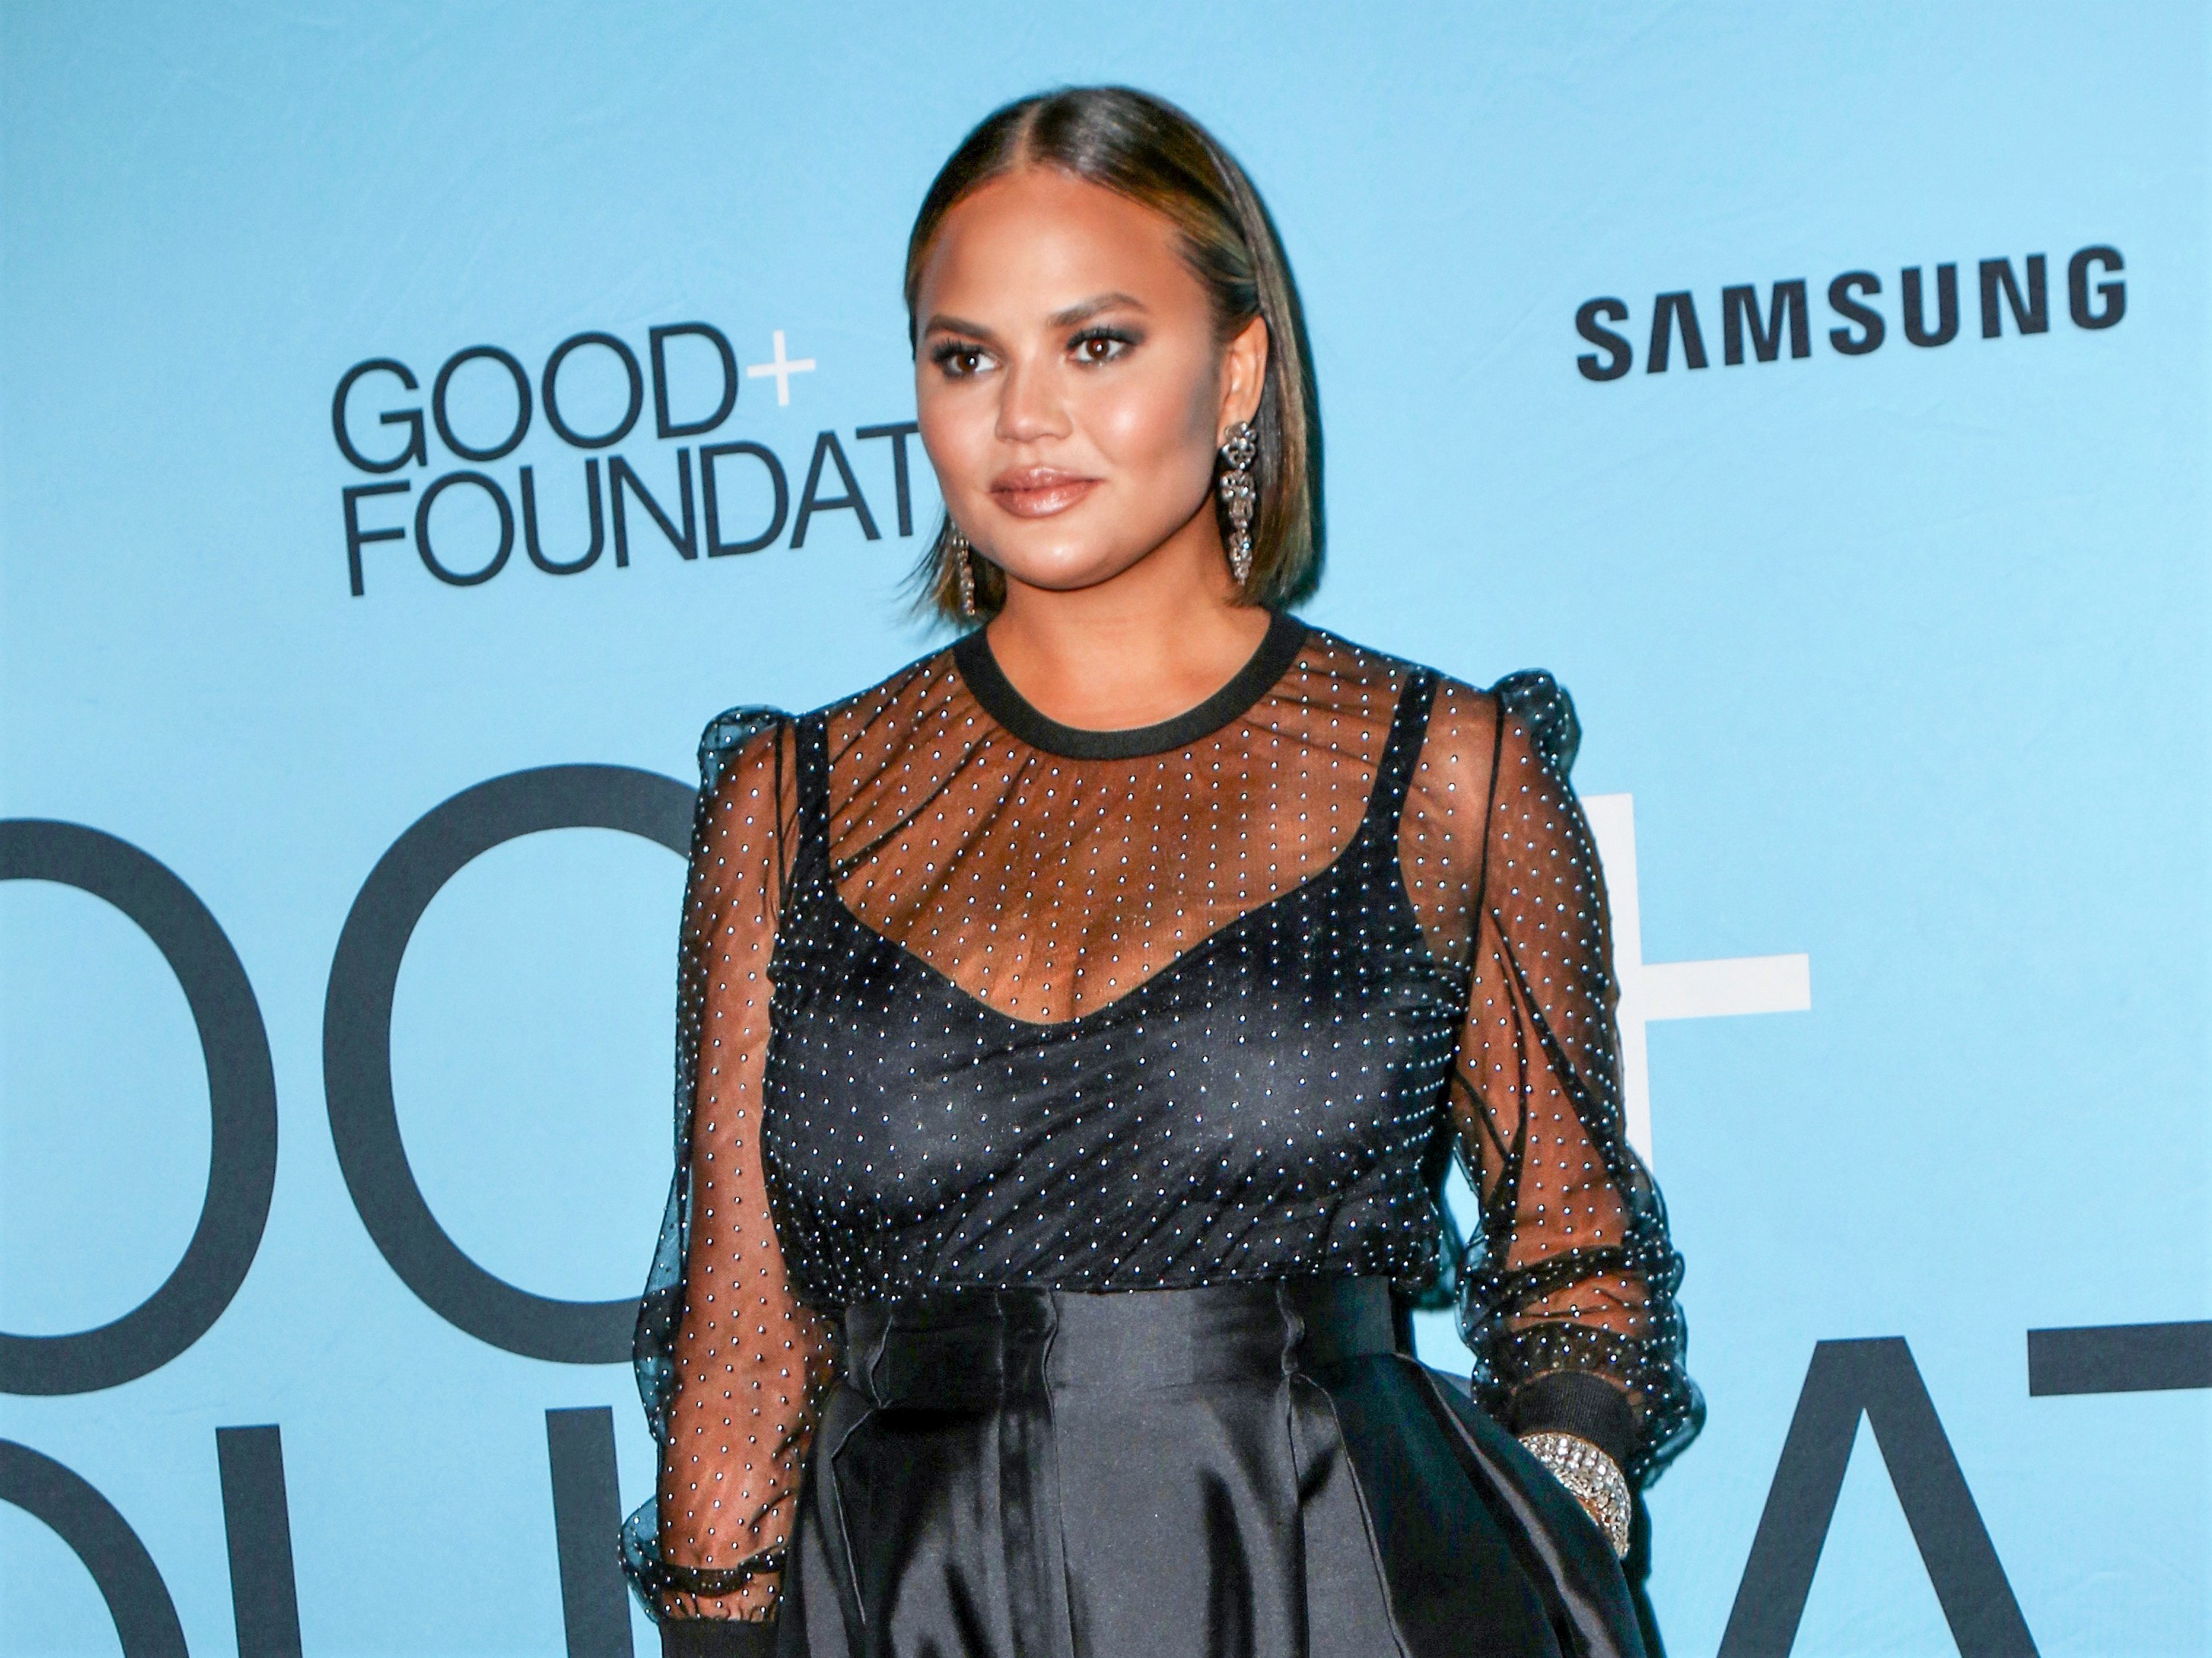 Chrissy Teigen's New Campaign Sheds Light on Postpartum Depression & Its Victims